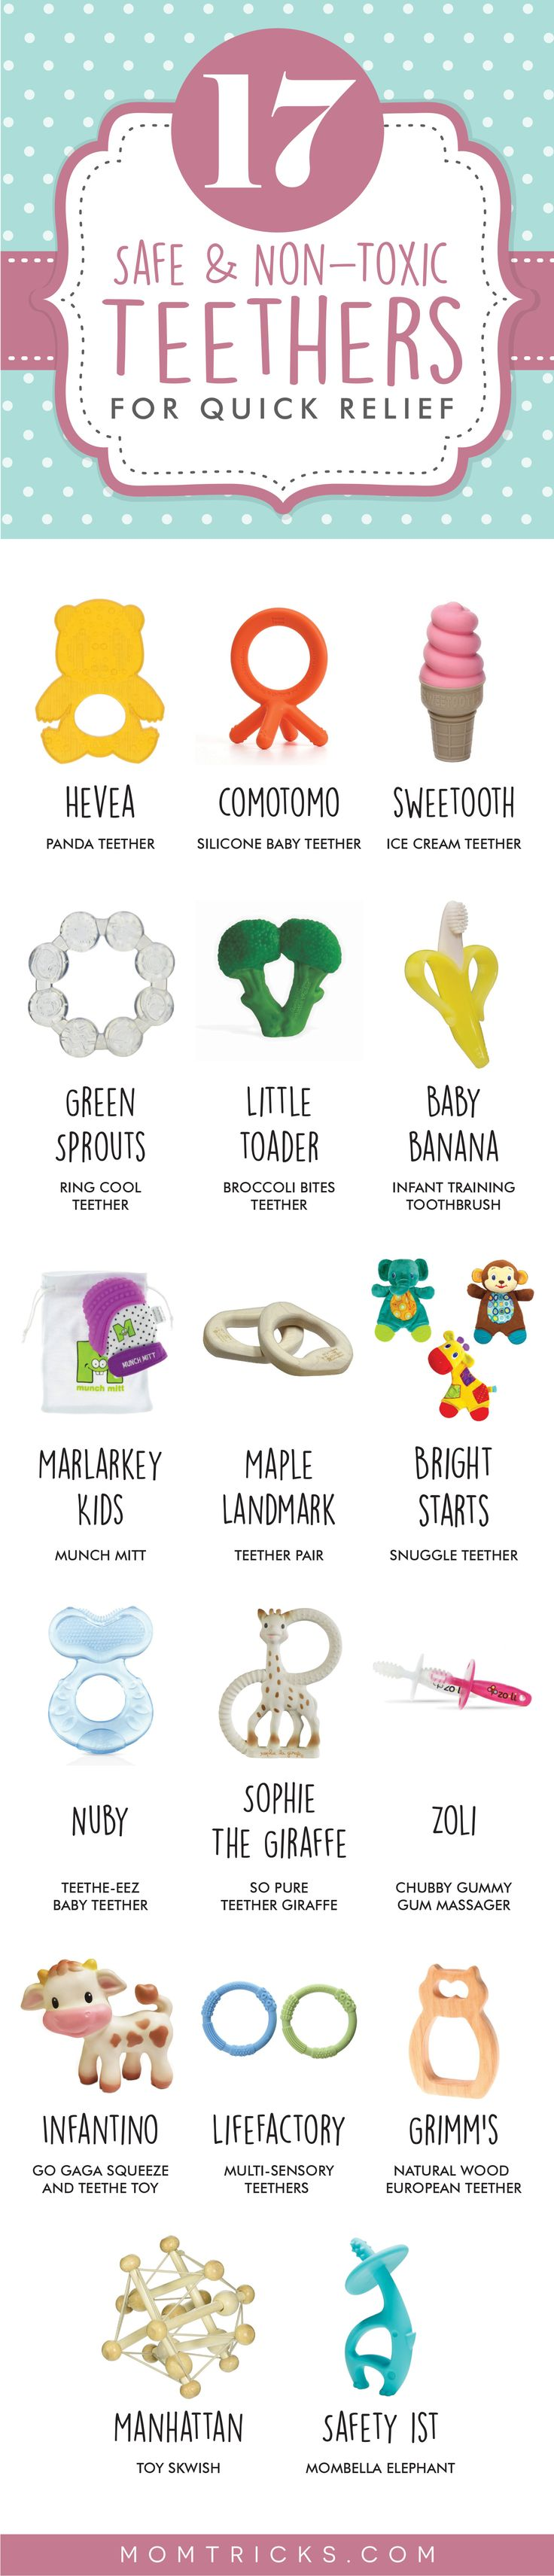 A list of the best teethers for babies! Full of options for non-toxic, natural and safe teethers that are sure to relieve baby's teething pains quickly and efficiently.